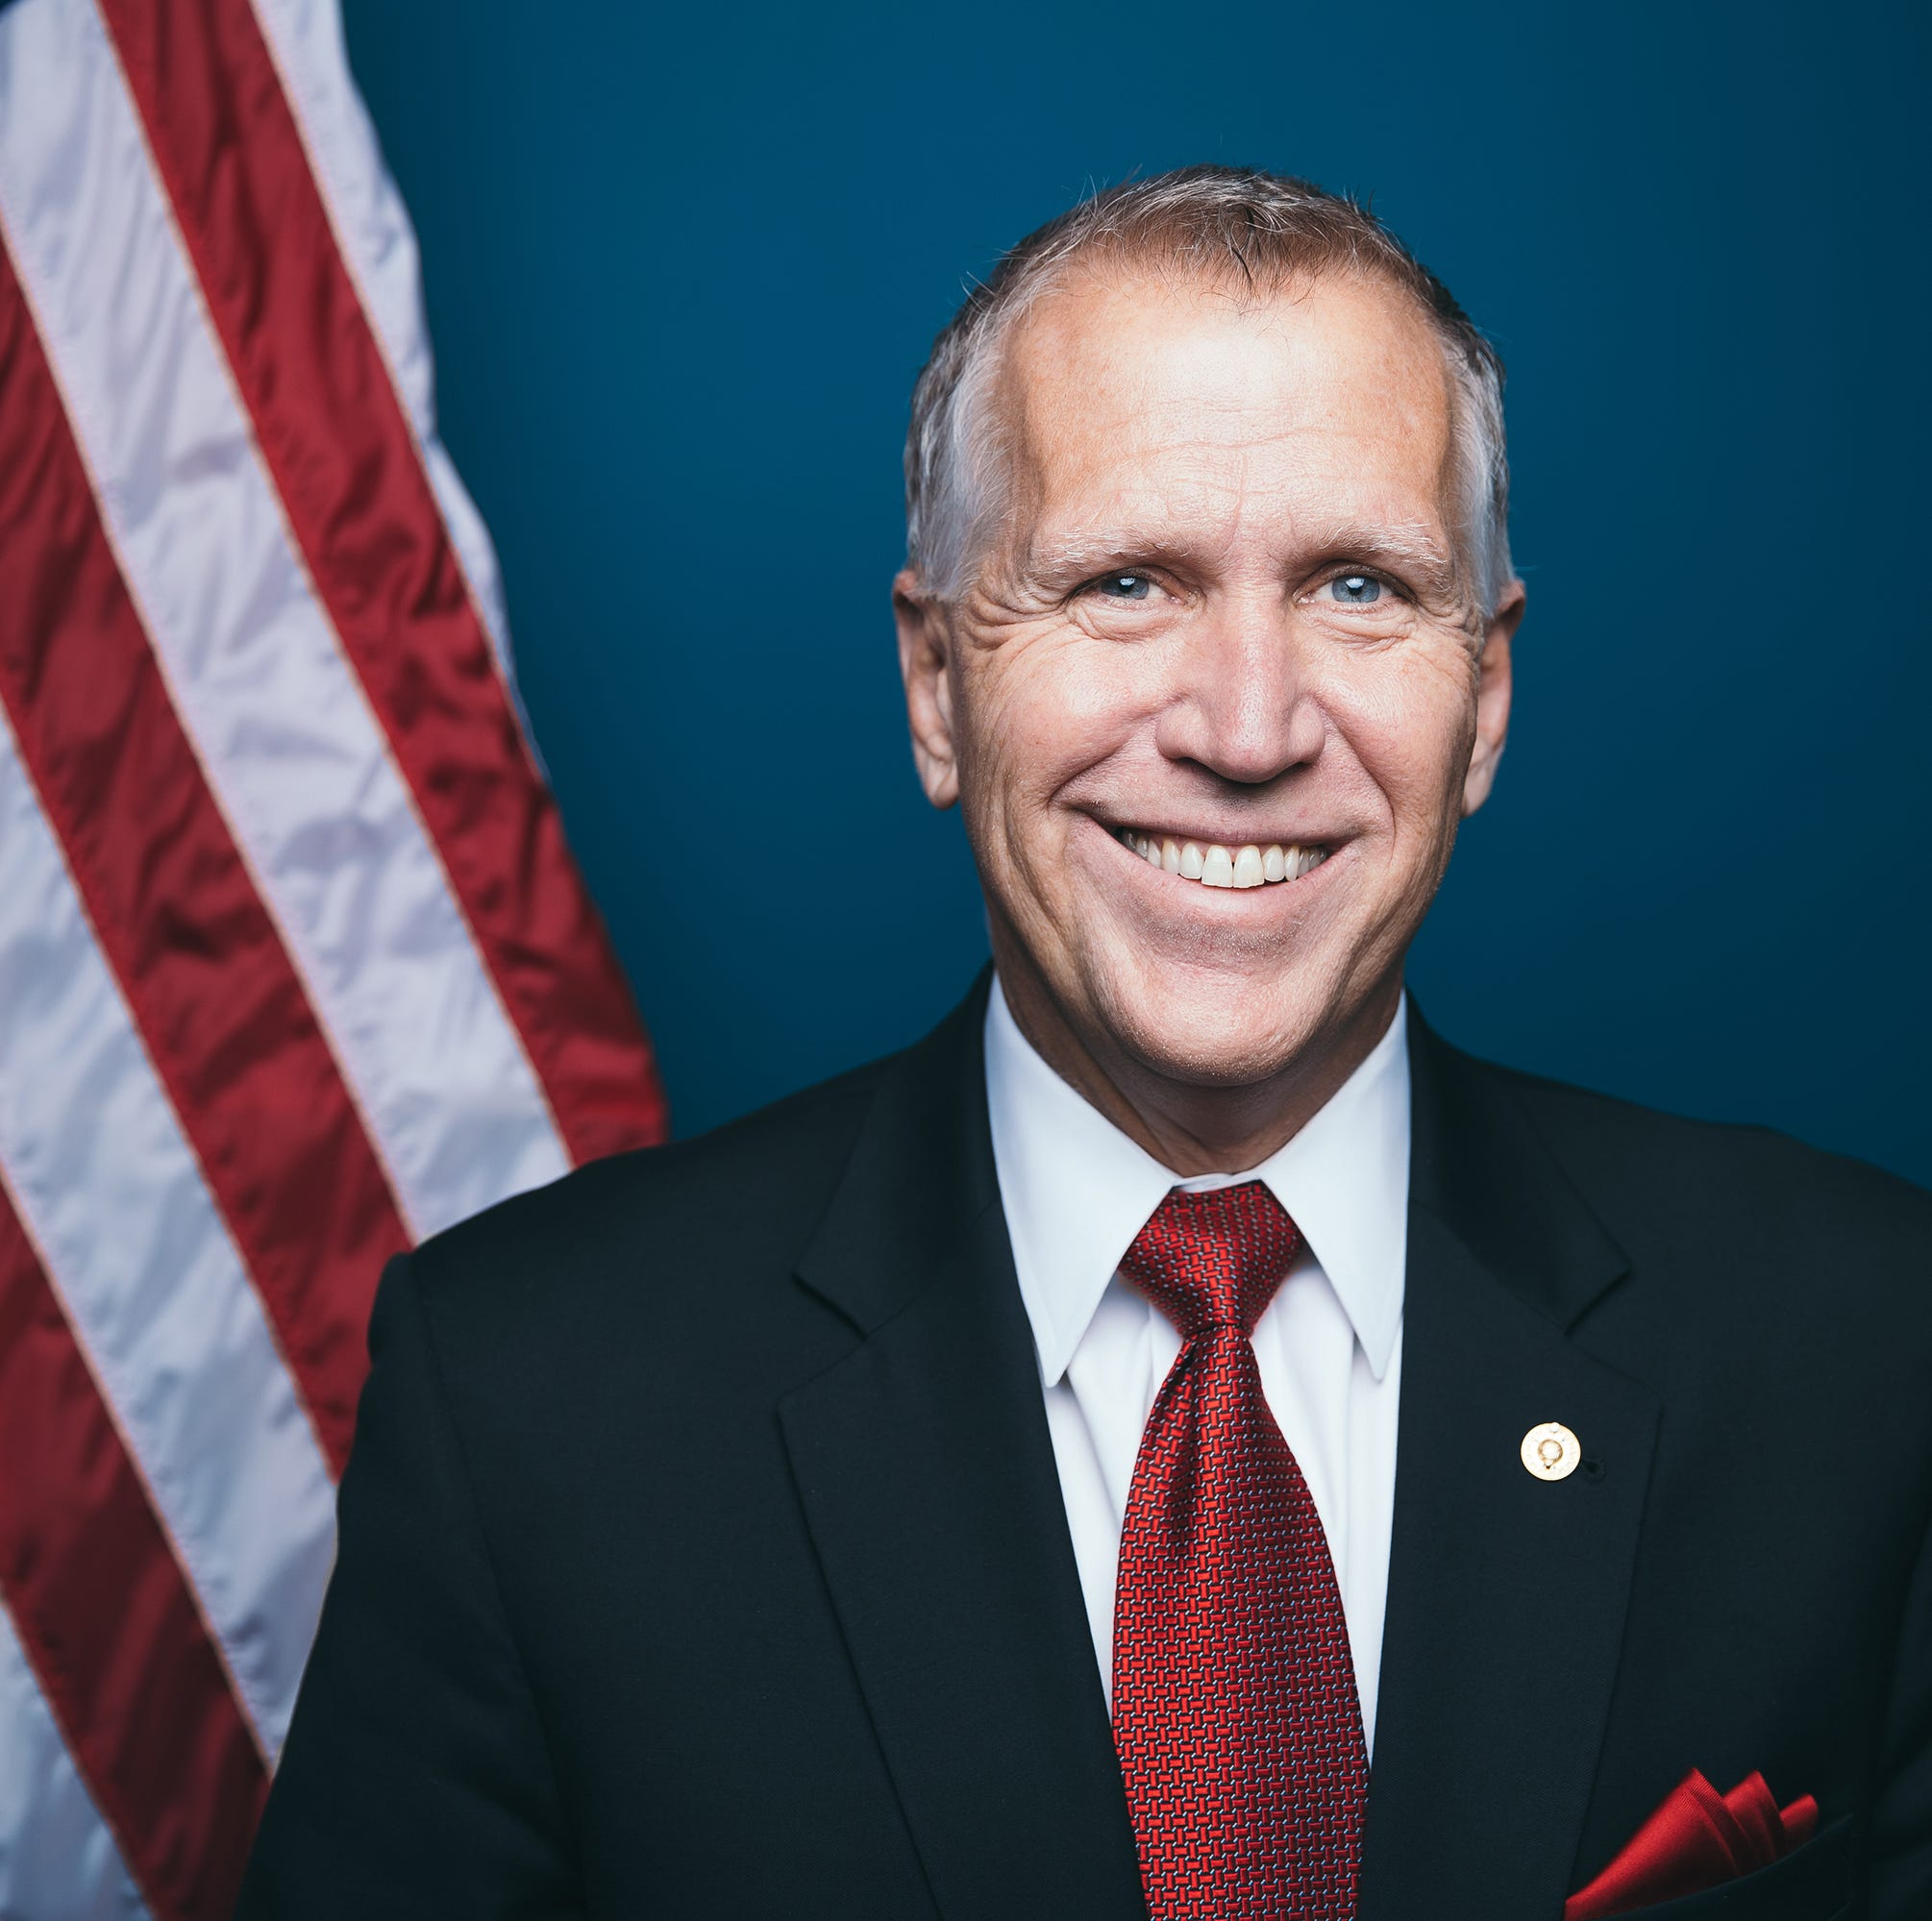 NC Republican Sen. Tillis flips on emergency wall funding, supports Trump